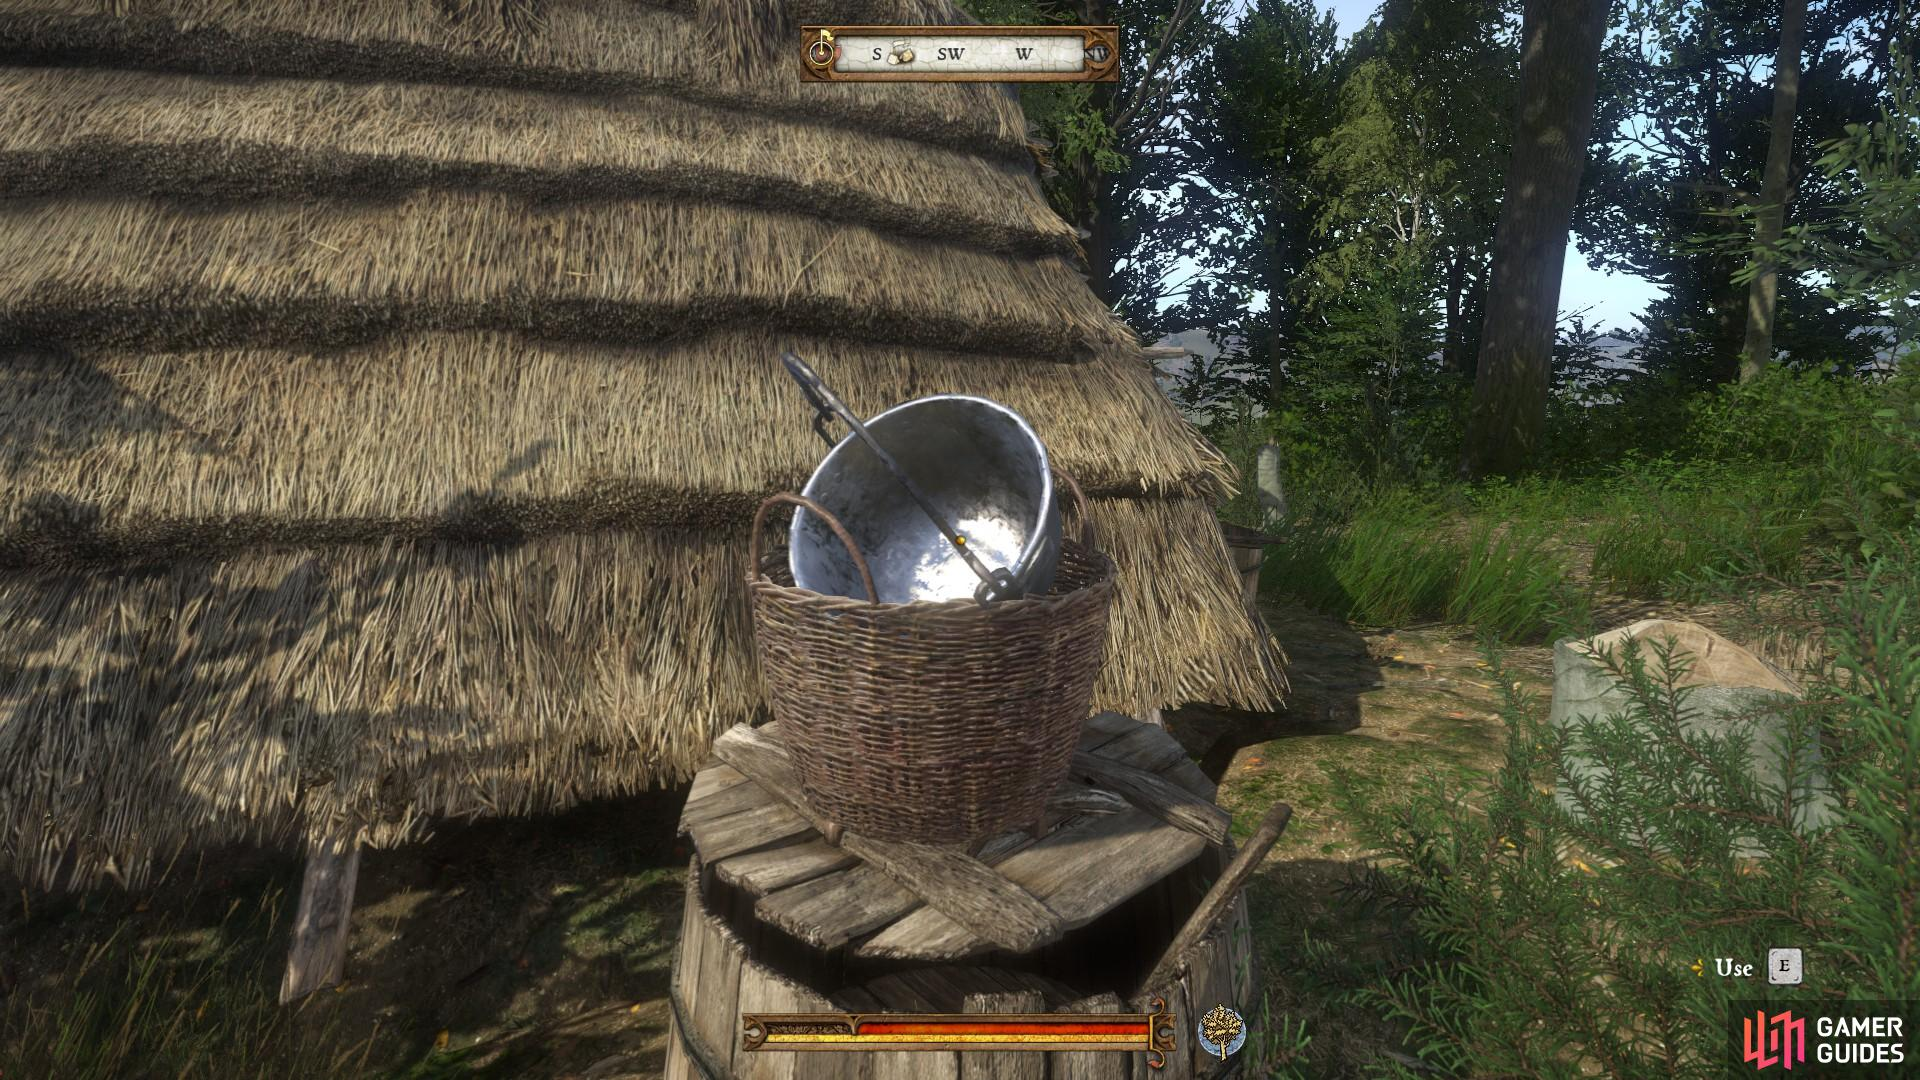 Interact with the kettle beside the hut and then speak with the charcoal-burner to incriminate him.